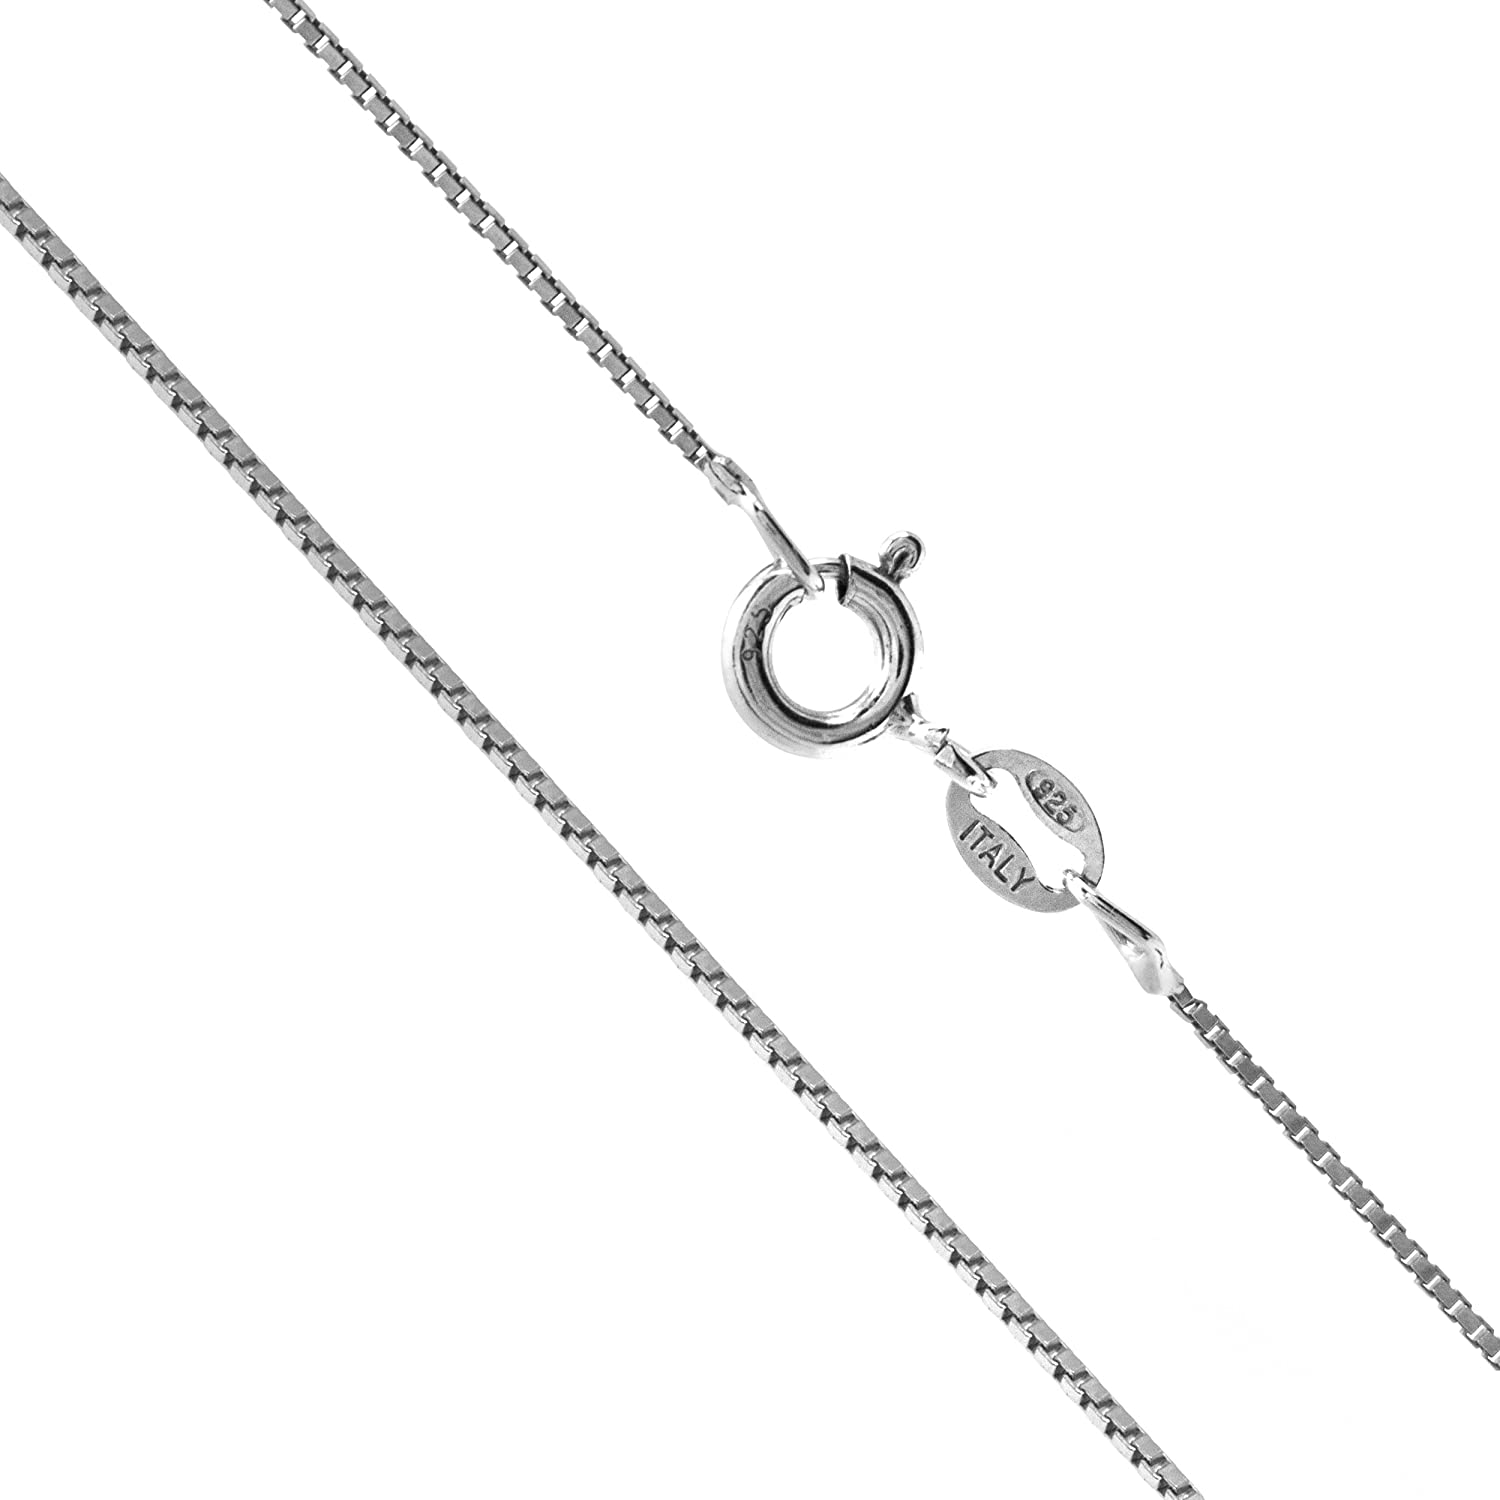 Honolulu Jewelry Company Sterling Silver 1mm Box Chain Necklace 14 - 36 @ Sons of Odin™ - Men's on